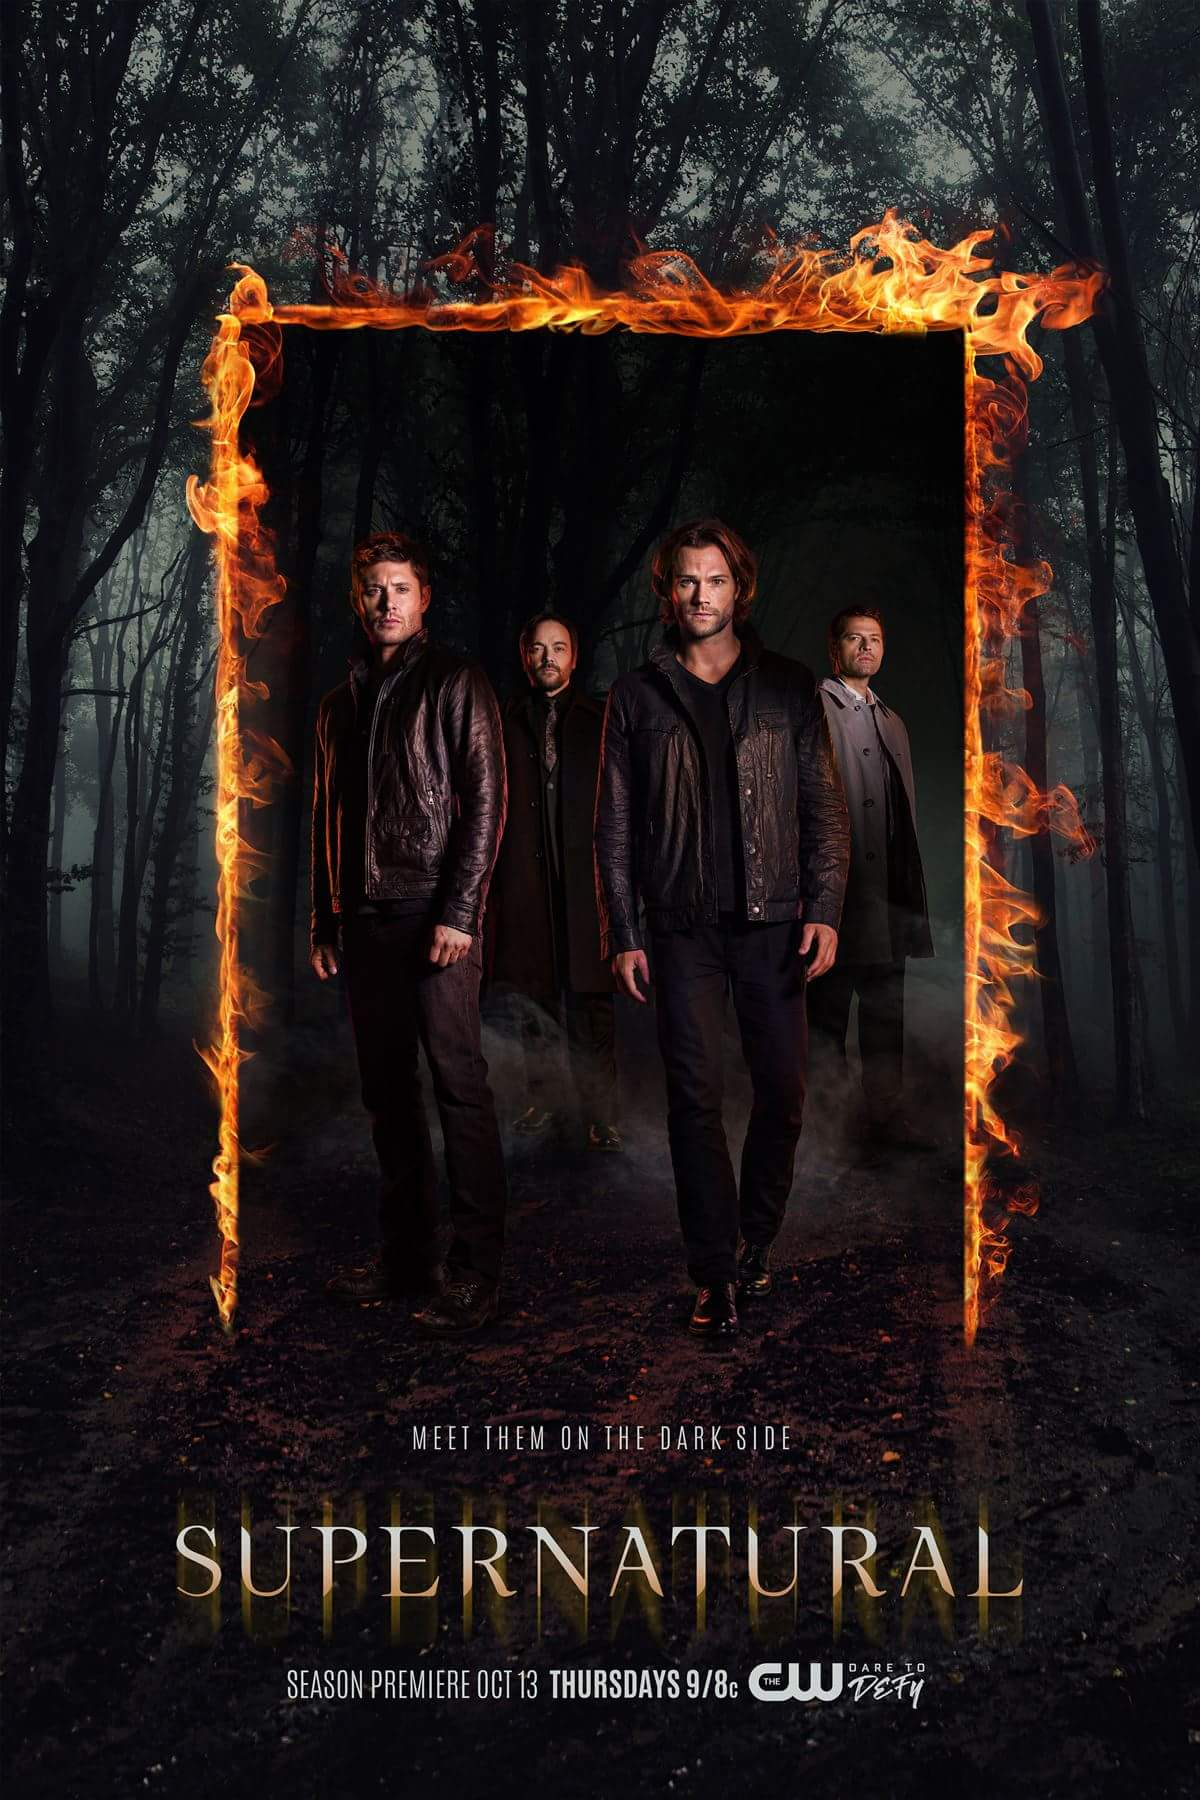 Supernatural-Key Art 12.jpg